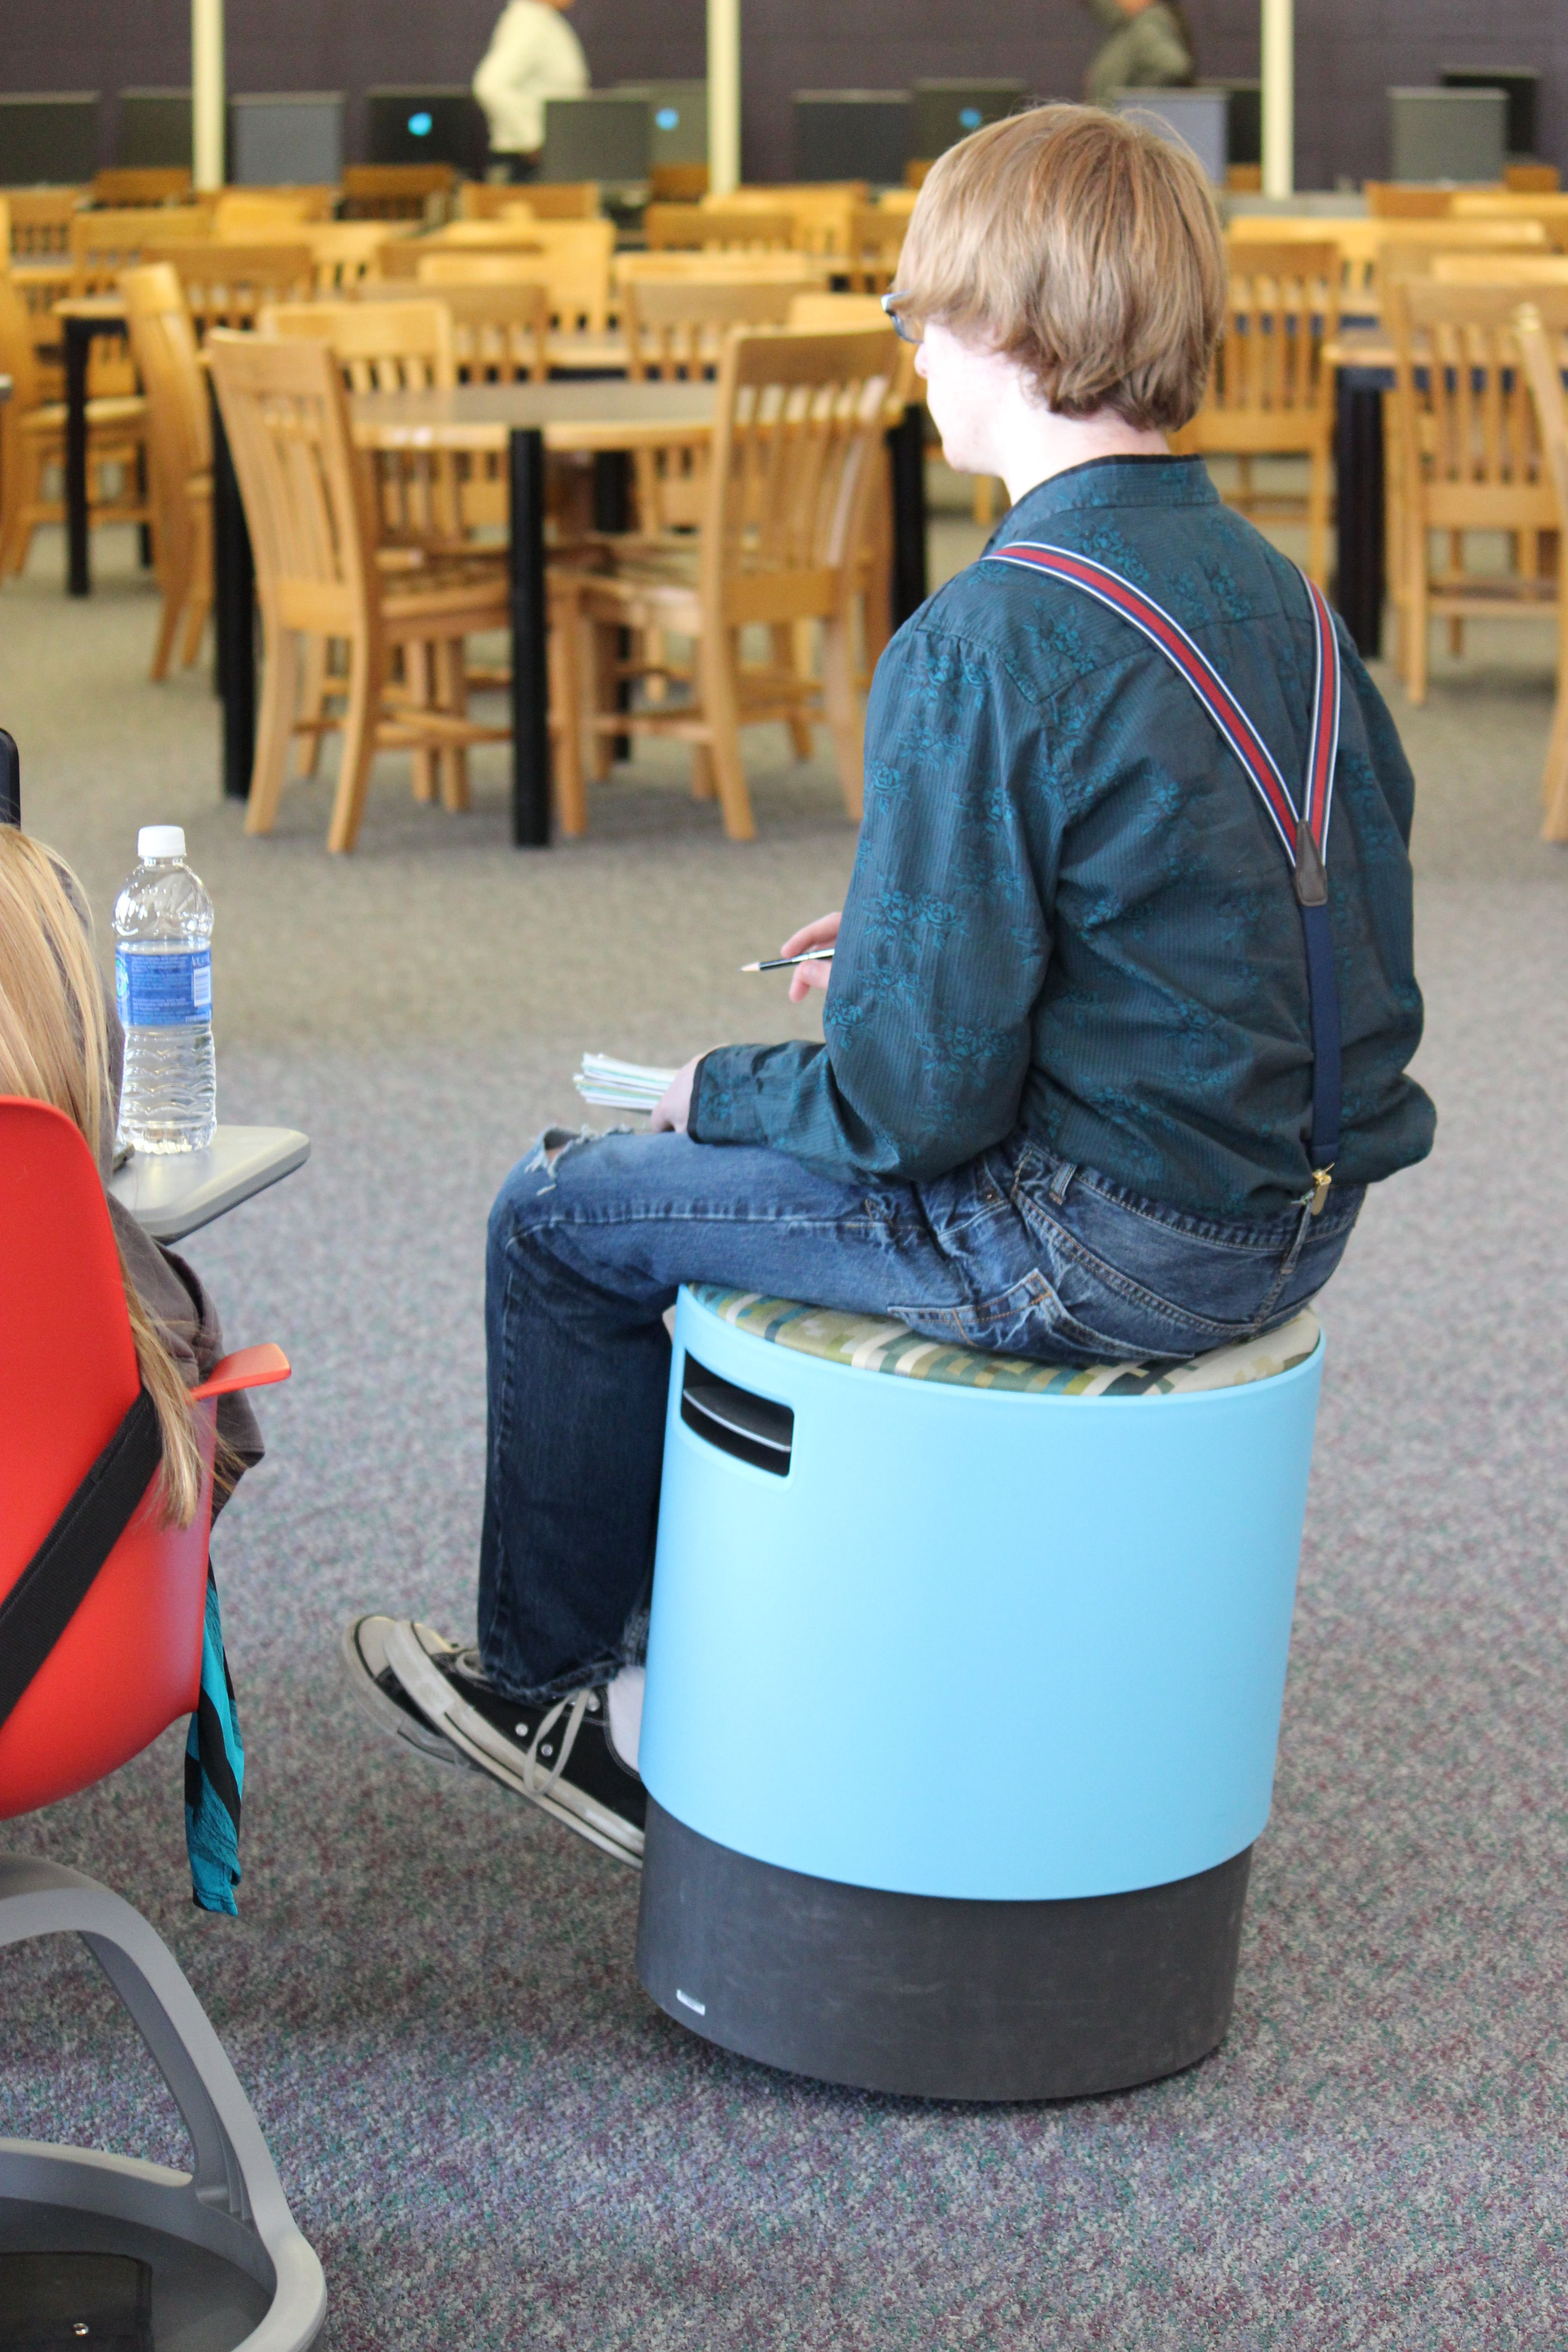 The Turnstone/Steelcase Buoy Chairs Were Very Popular And Respectfully  Used. Great Alternative To Yoga Balls, Which I Have Never Found To Be Clean  Or ...